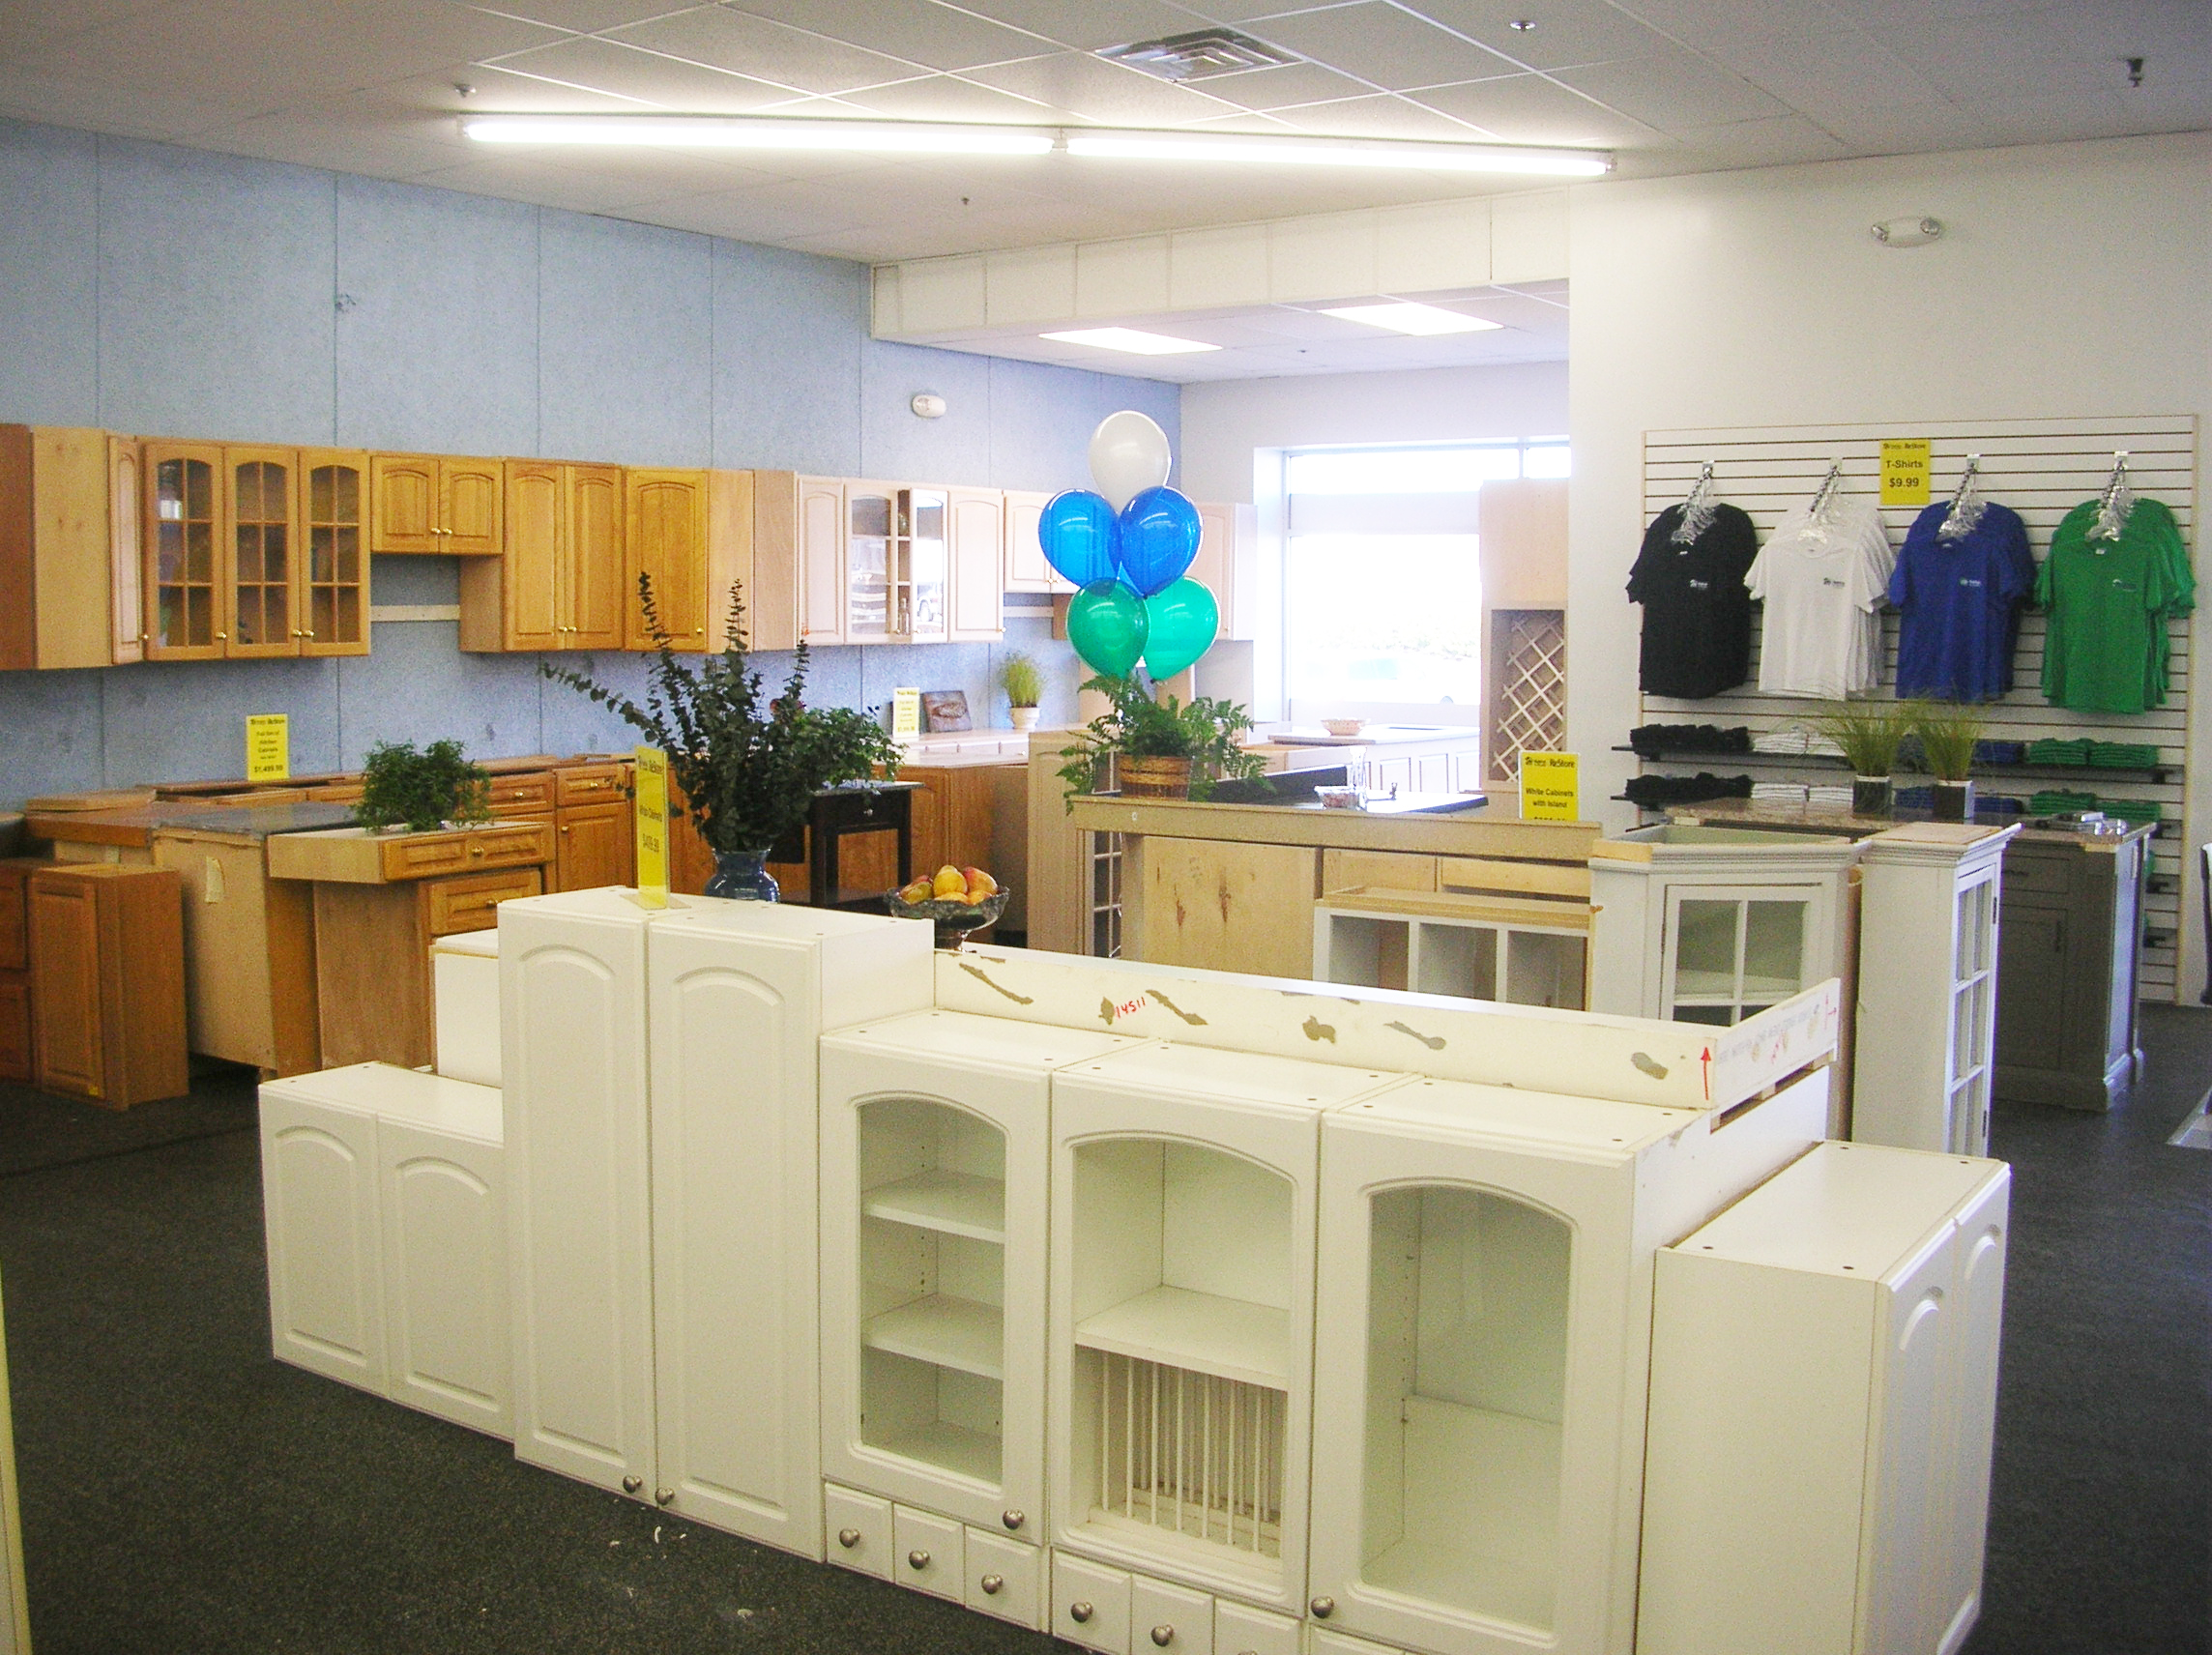 Cabinets Donate Household Items Liances Bed Table Furniture Stove Kitchen